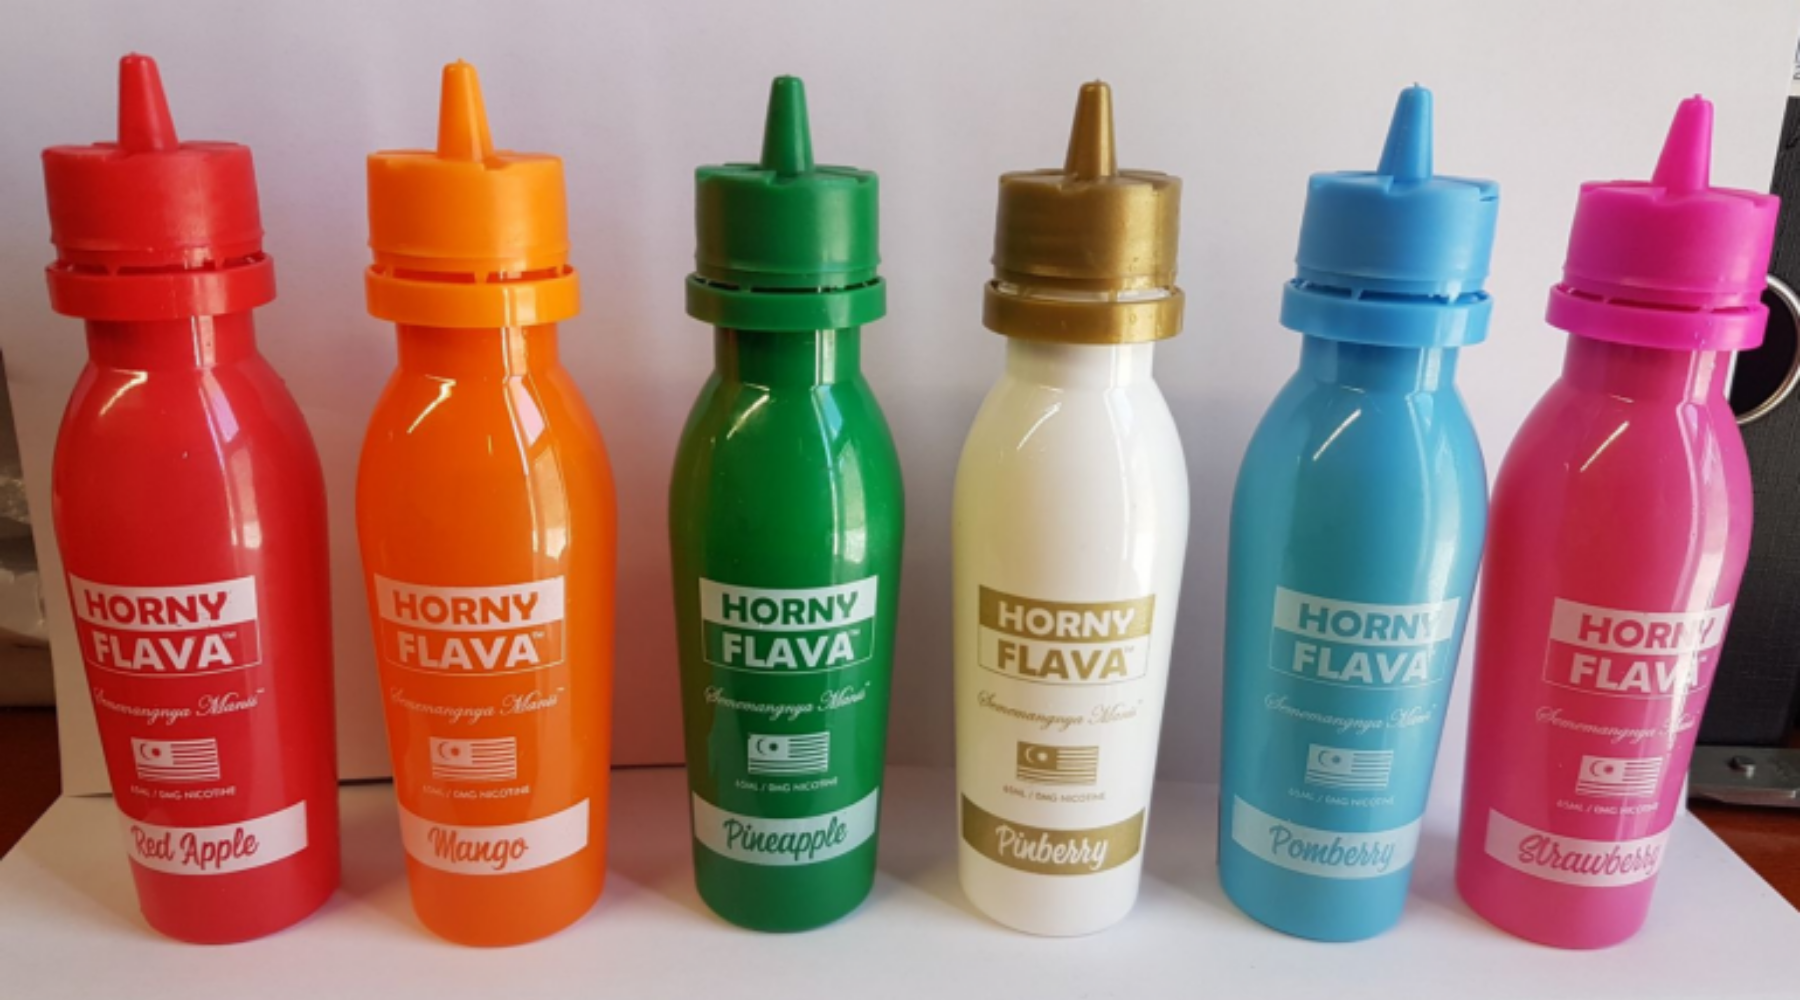 A Vape Review Of The Full Line Of Horny Flava Eliquid For 2020